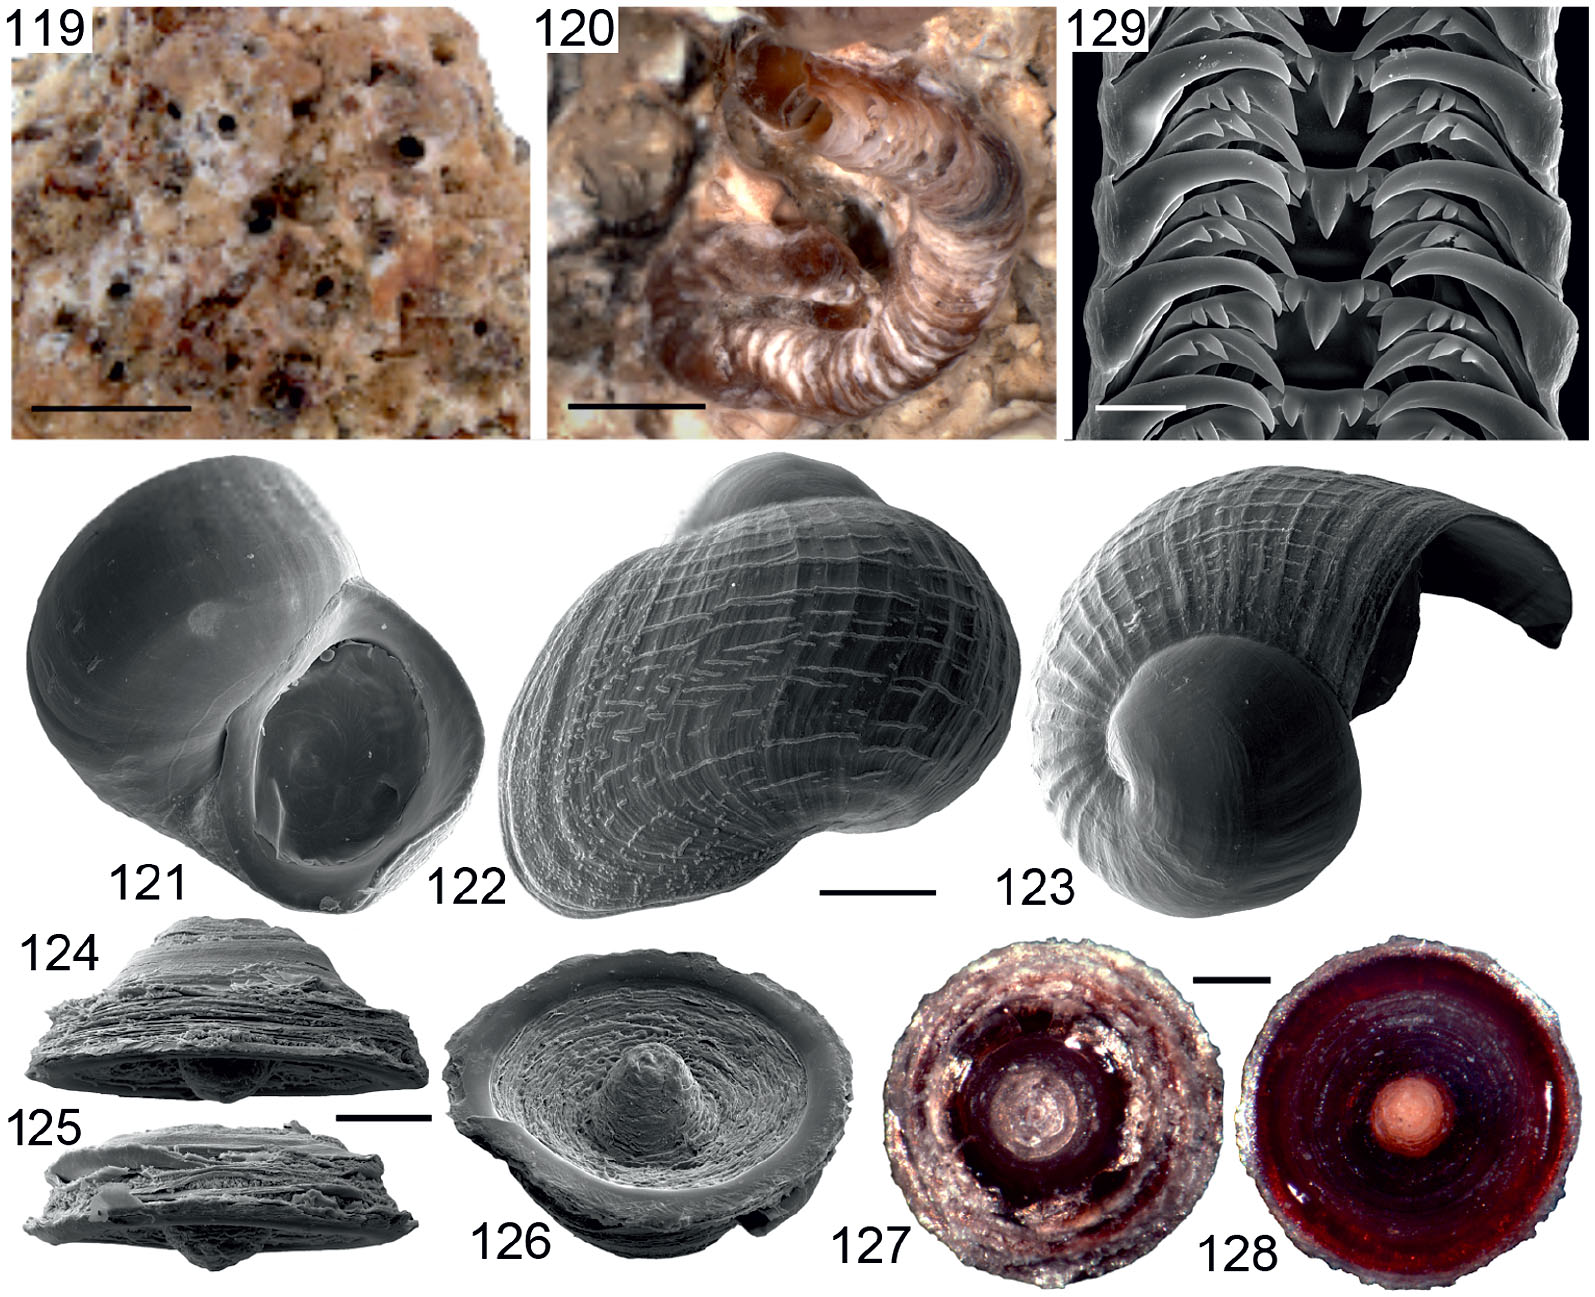 094c7231aba47 Deconstructing Dendropoma: A Systematic Revision of a World-Wide ...